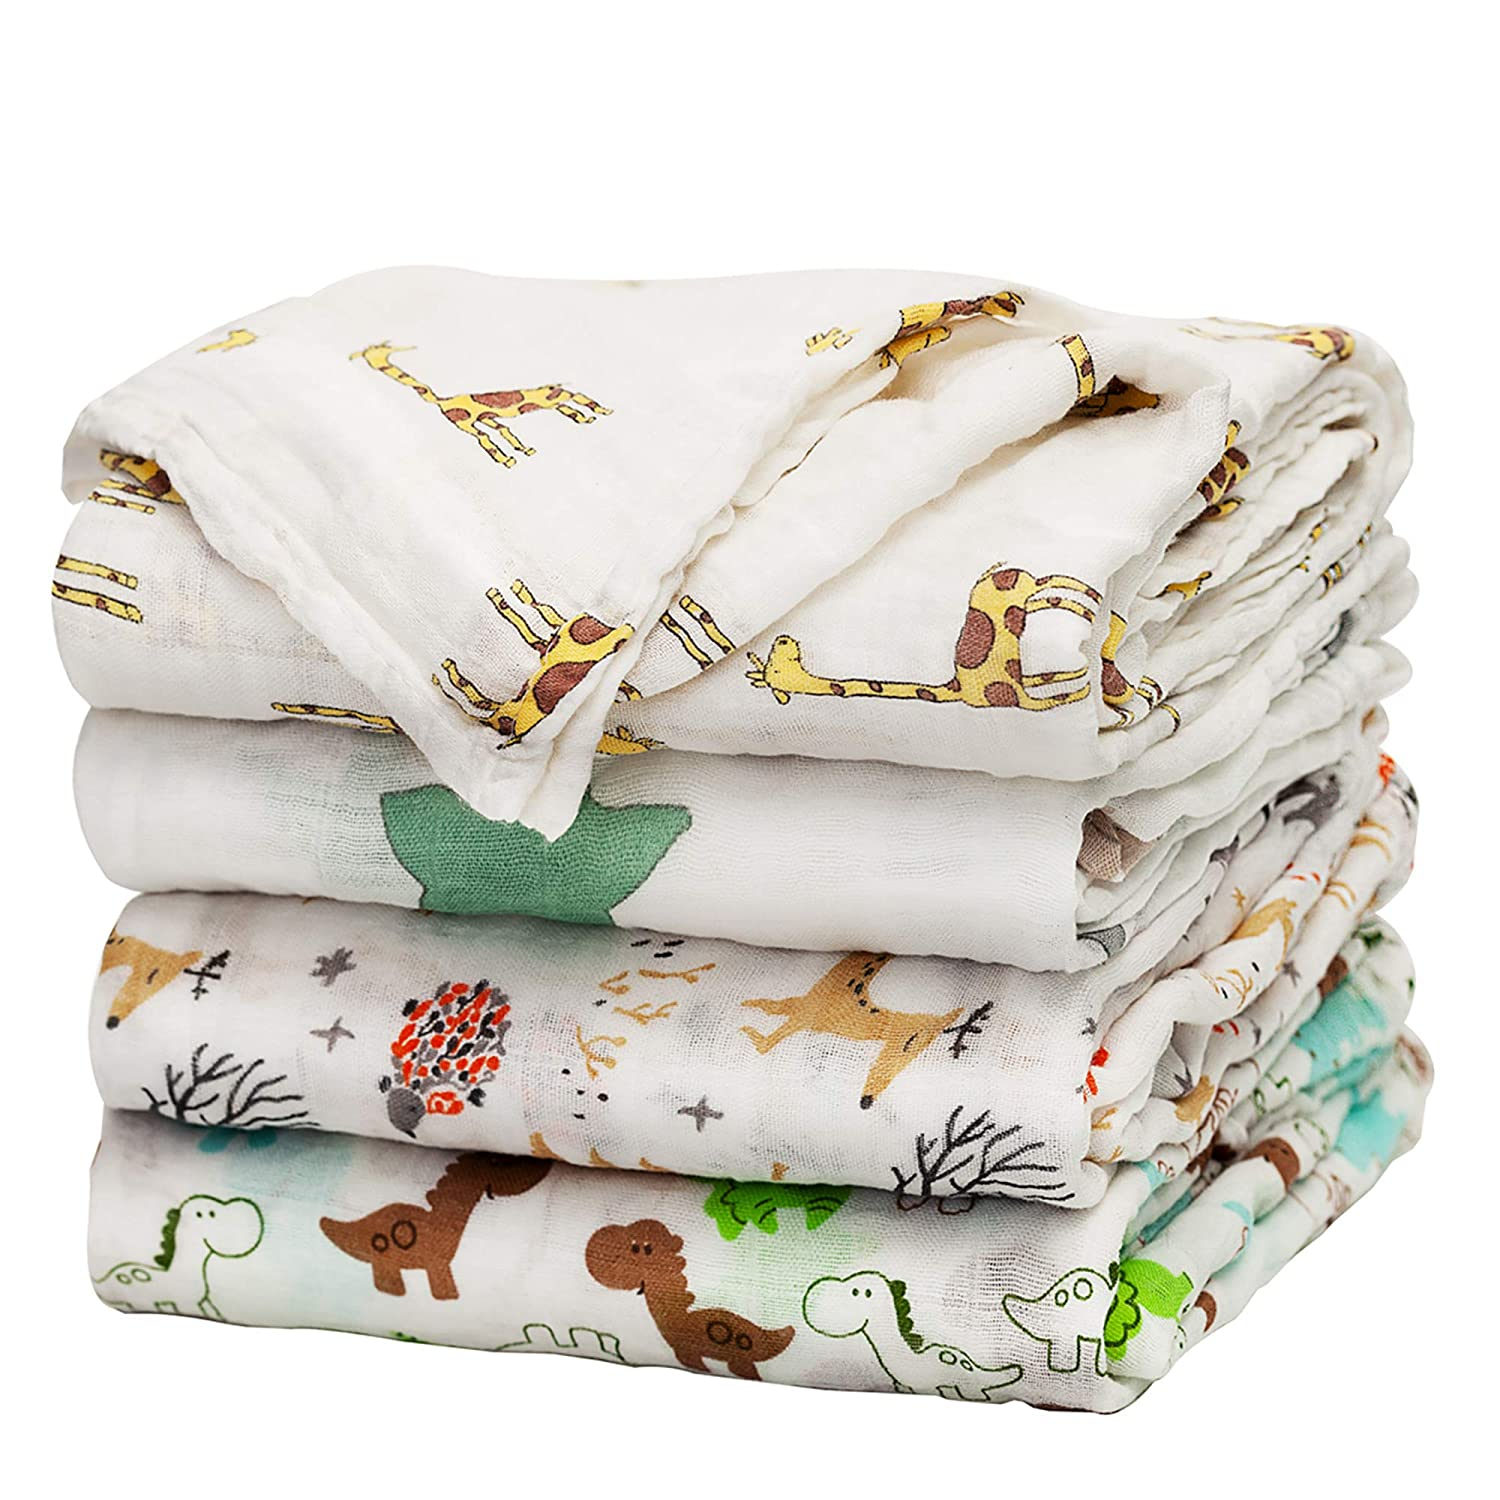 Baby Swaddle Blanket Upsimples Unisex Swaddle Wrap Soft Silky Bamboo Muslin Swaddle Blankets Neutral Receiving Blanket for Boys and Girls, 47 x 47 inches, Set of 4 - Fox/Elephant/Giraffe/Dinosaur: Baby